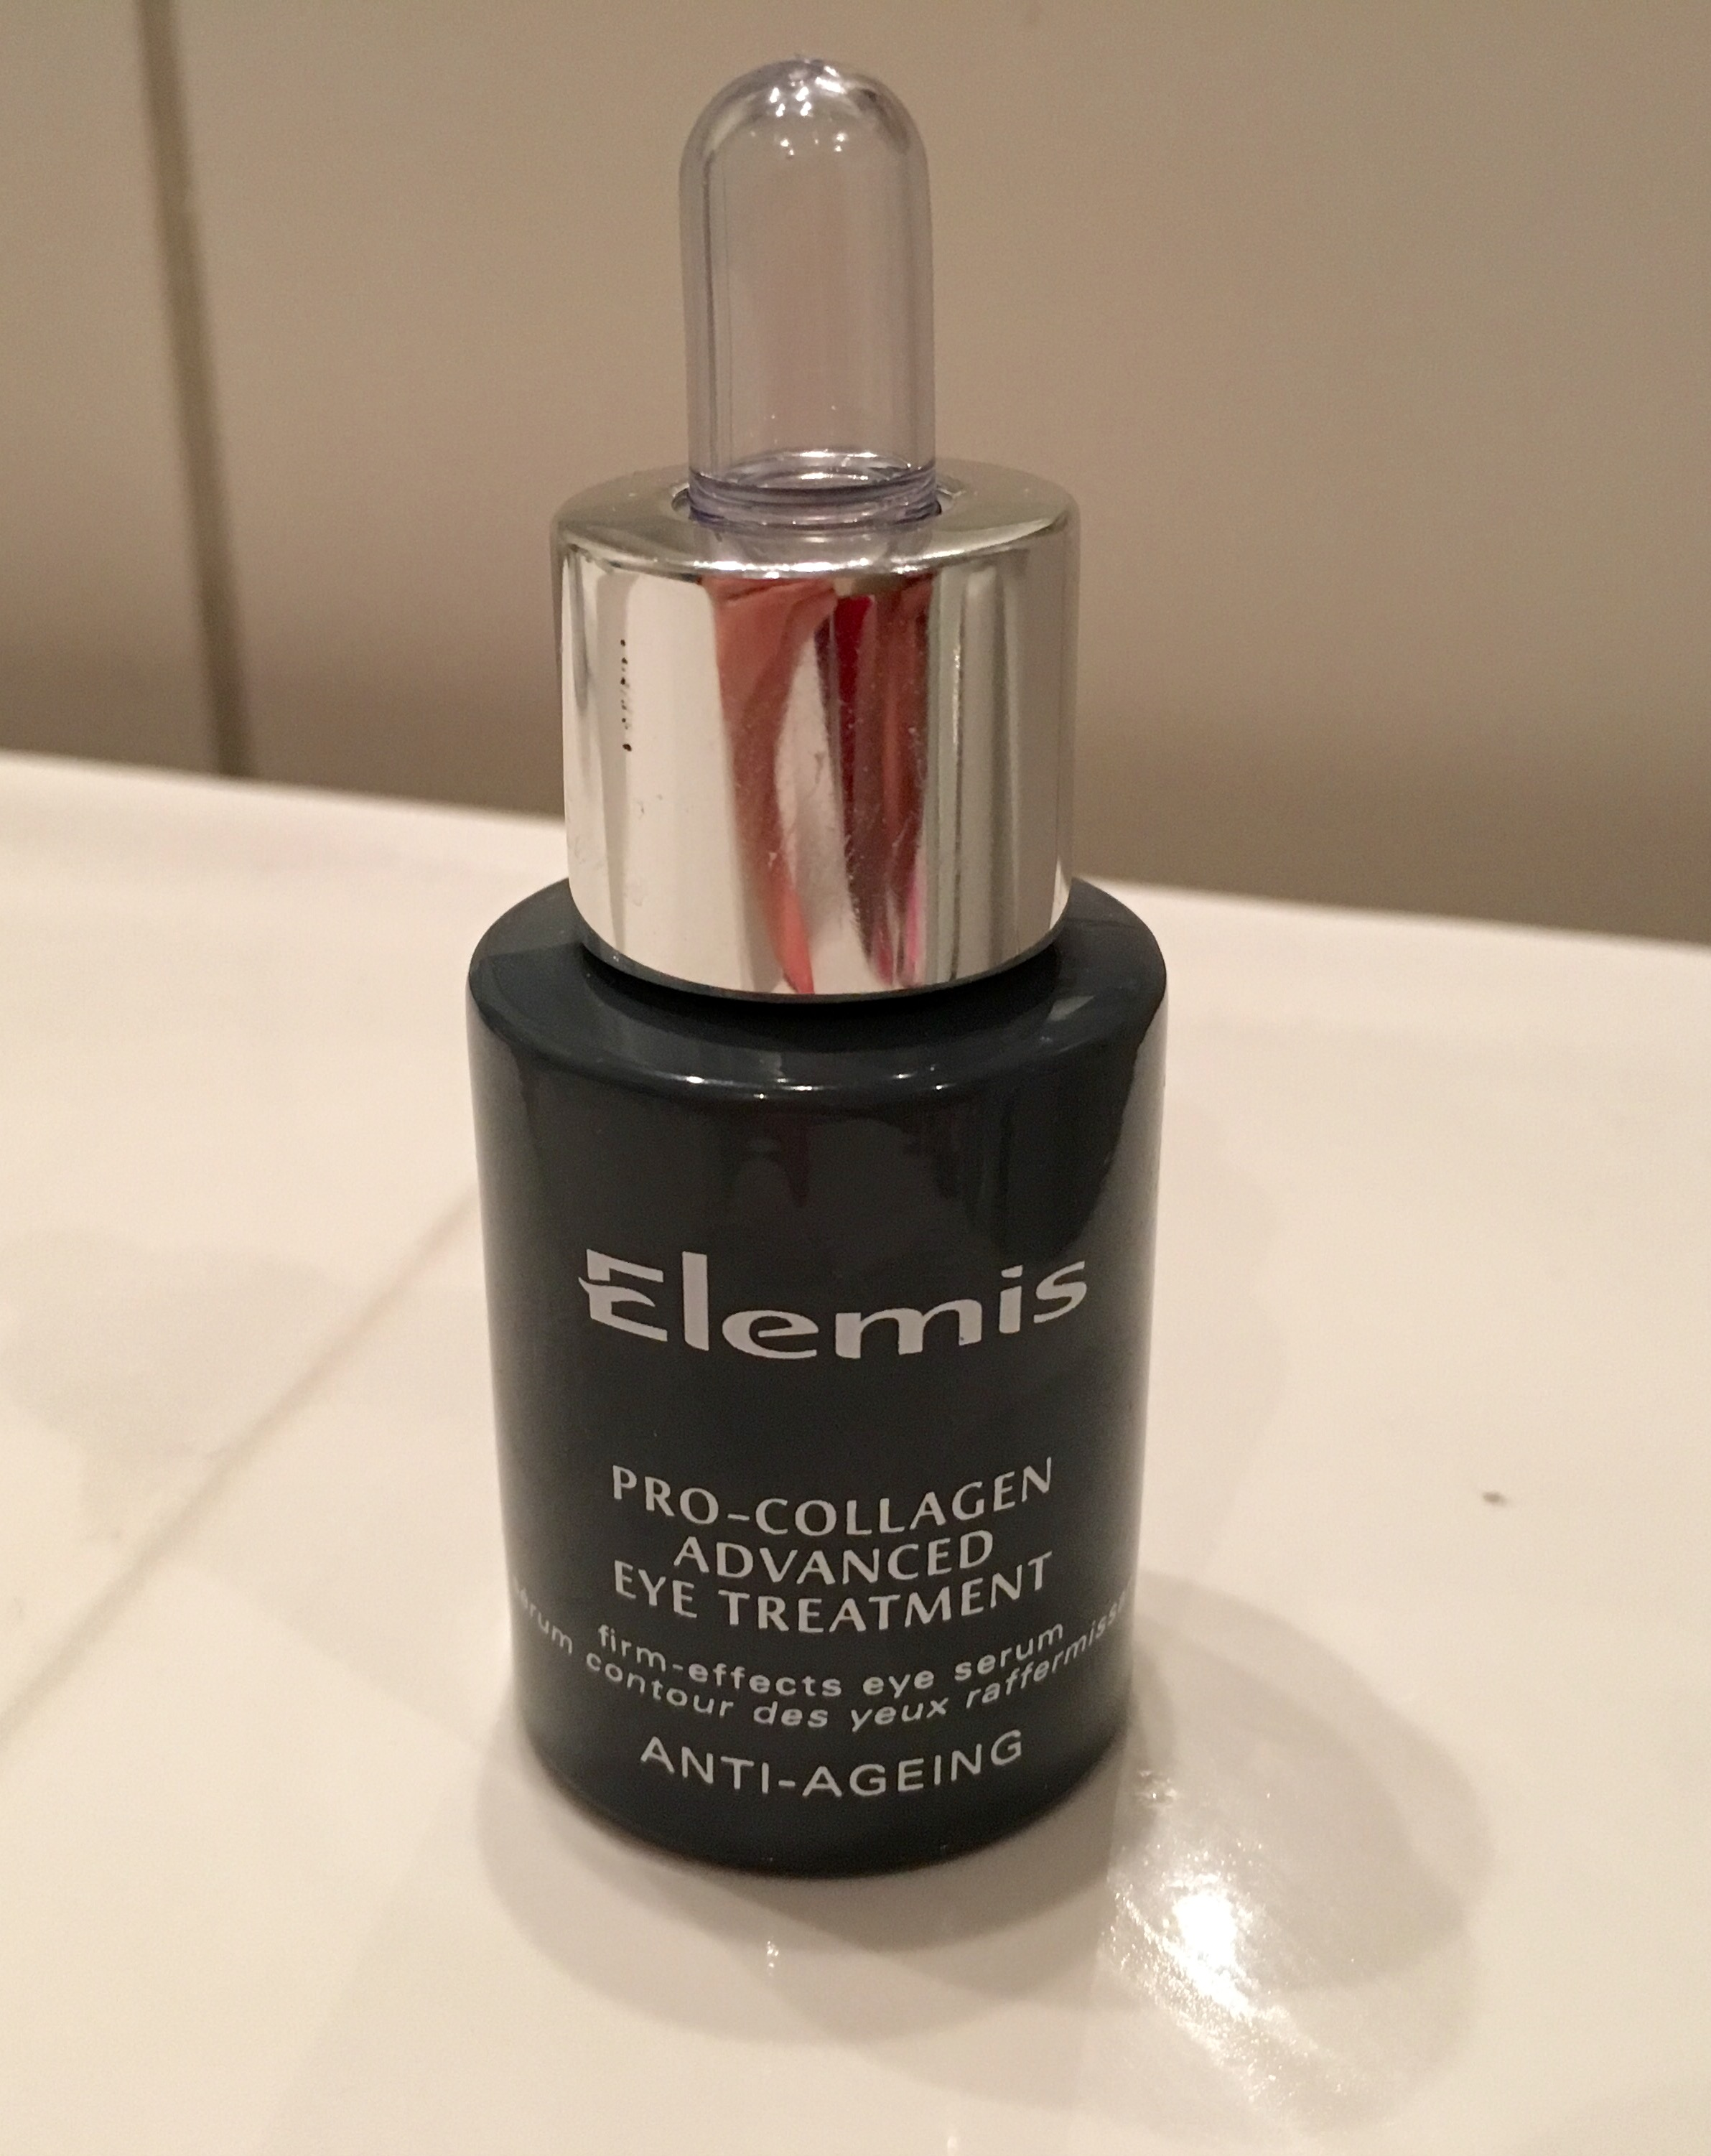 Elemis pro-collagen ögonserum